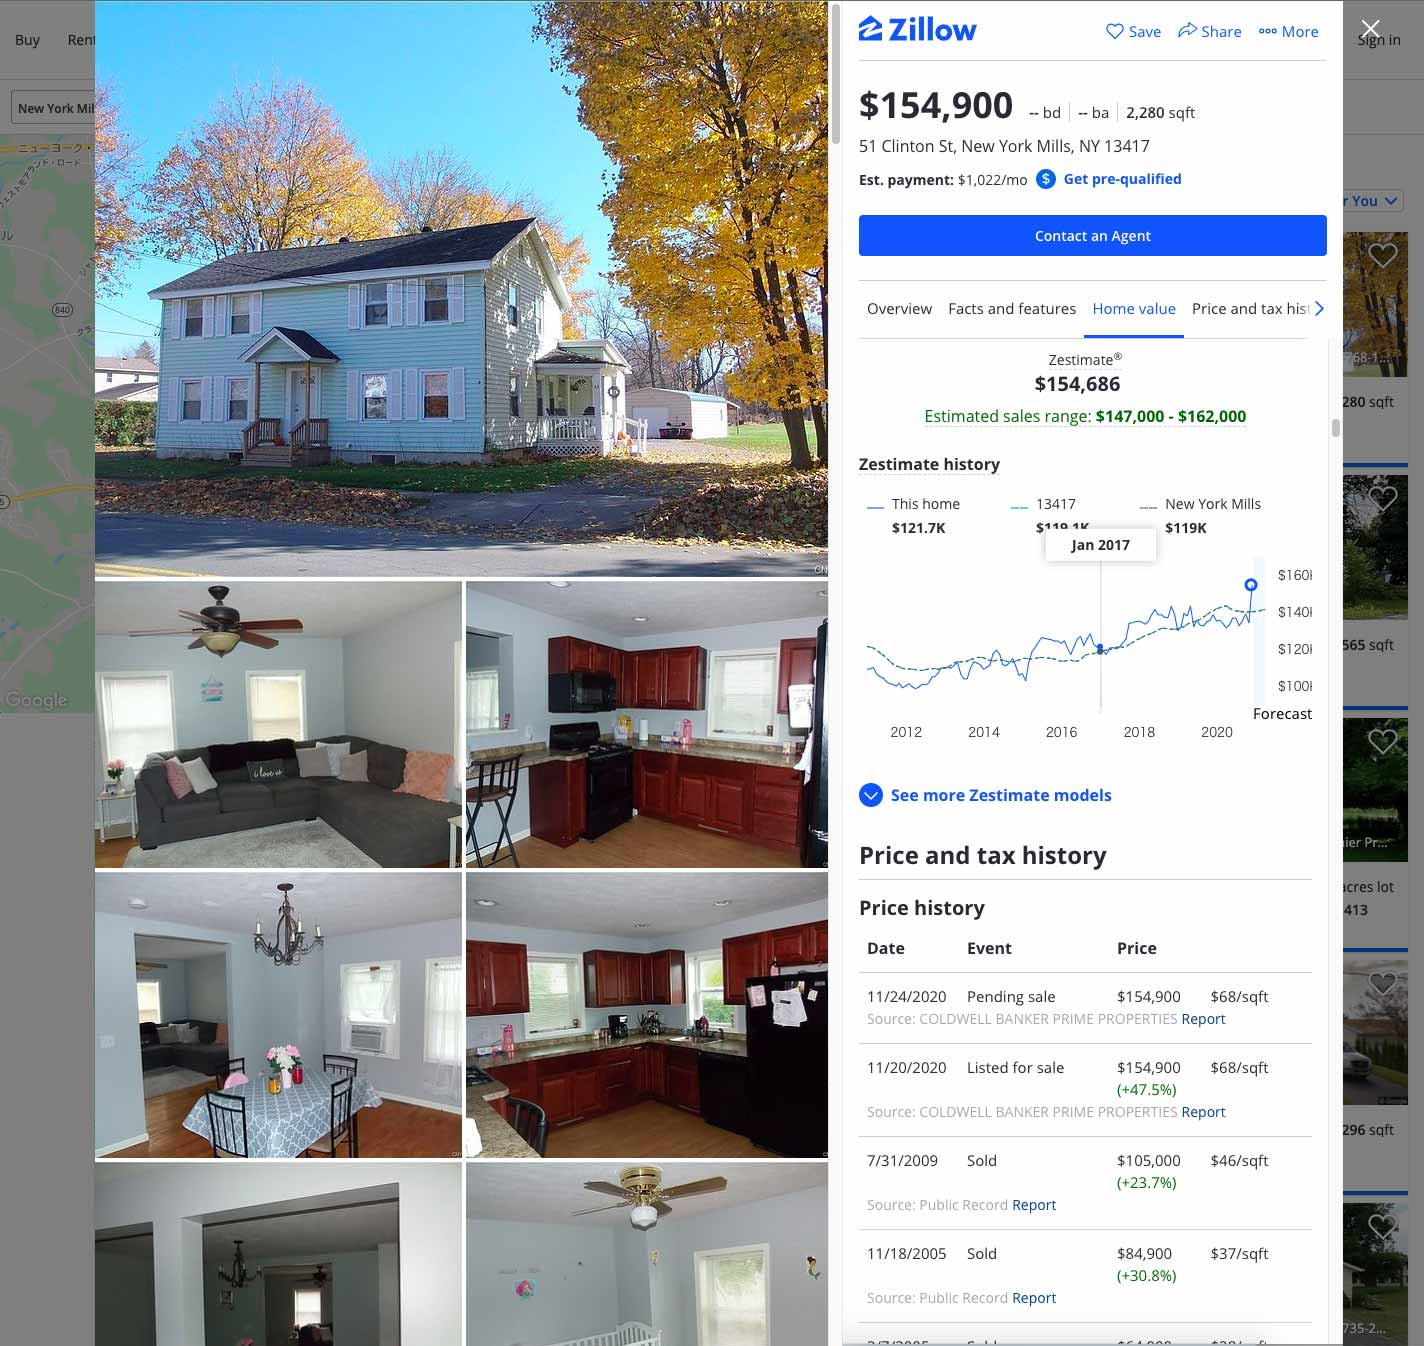 New York Mills Real Estate  | Zillow